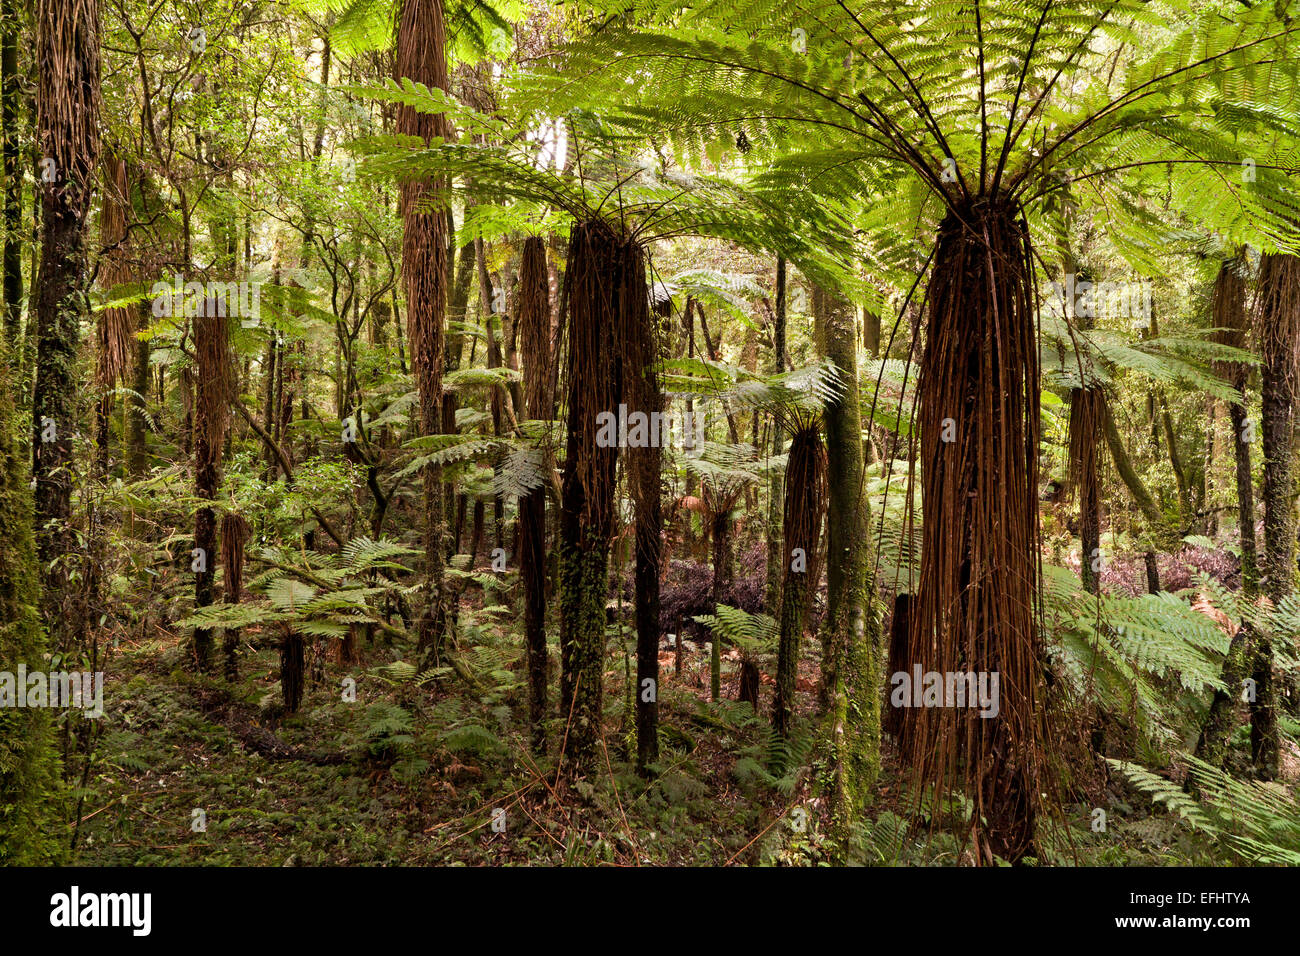 Green canopy from tree ferns and fern fronds in Whirinaki Forest, North Island, New Zealand Stock Photo